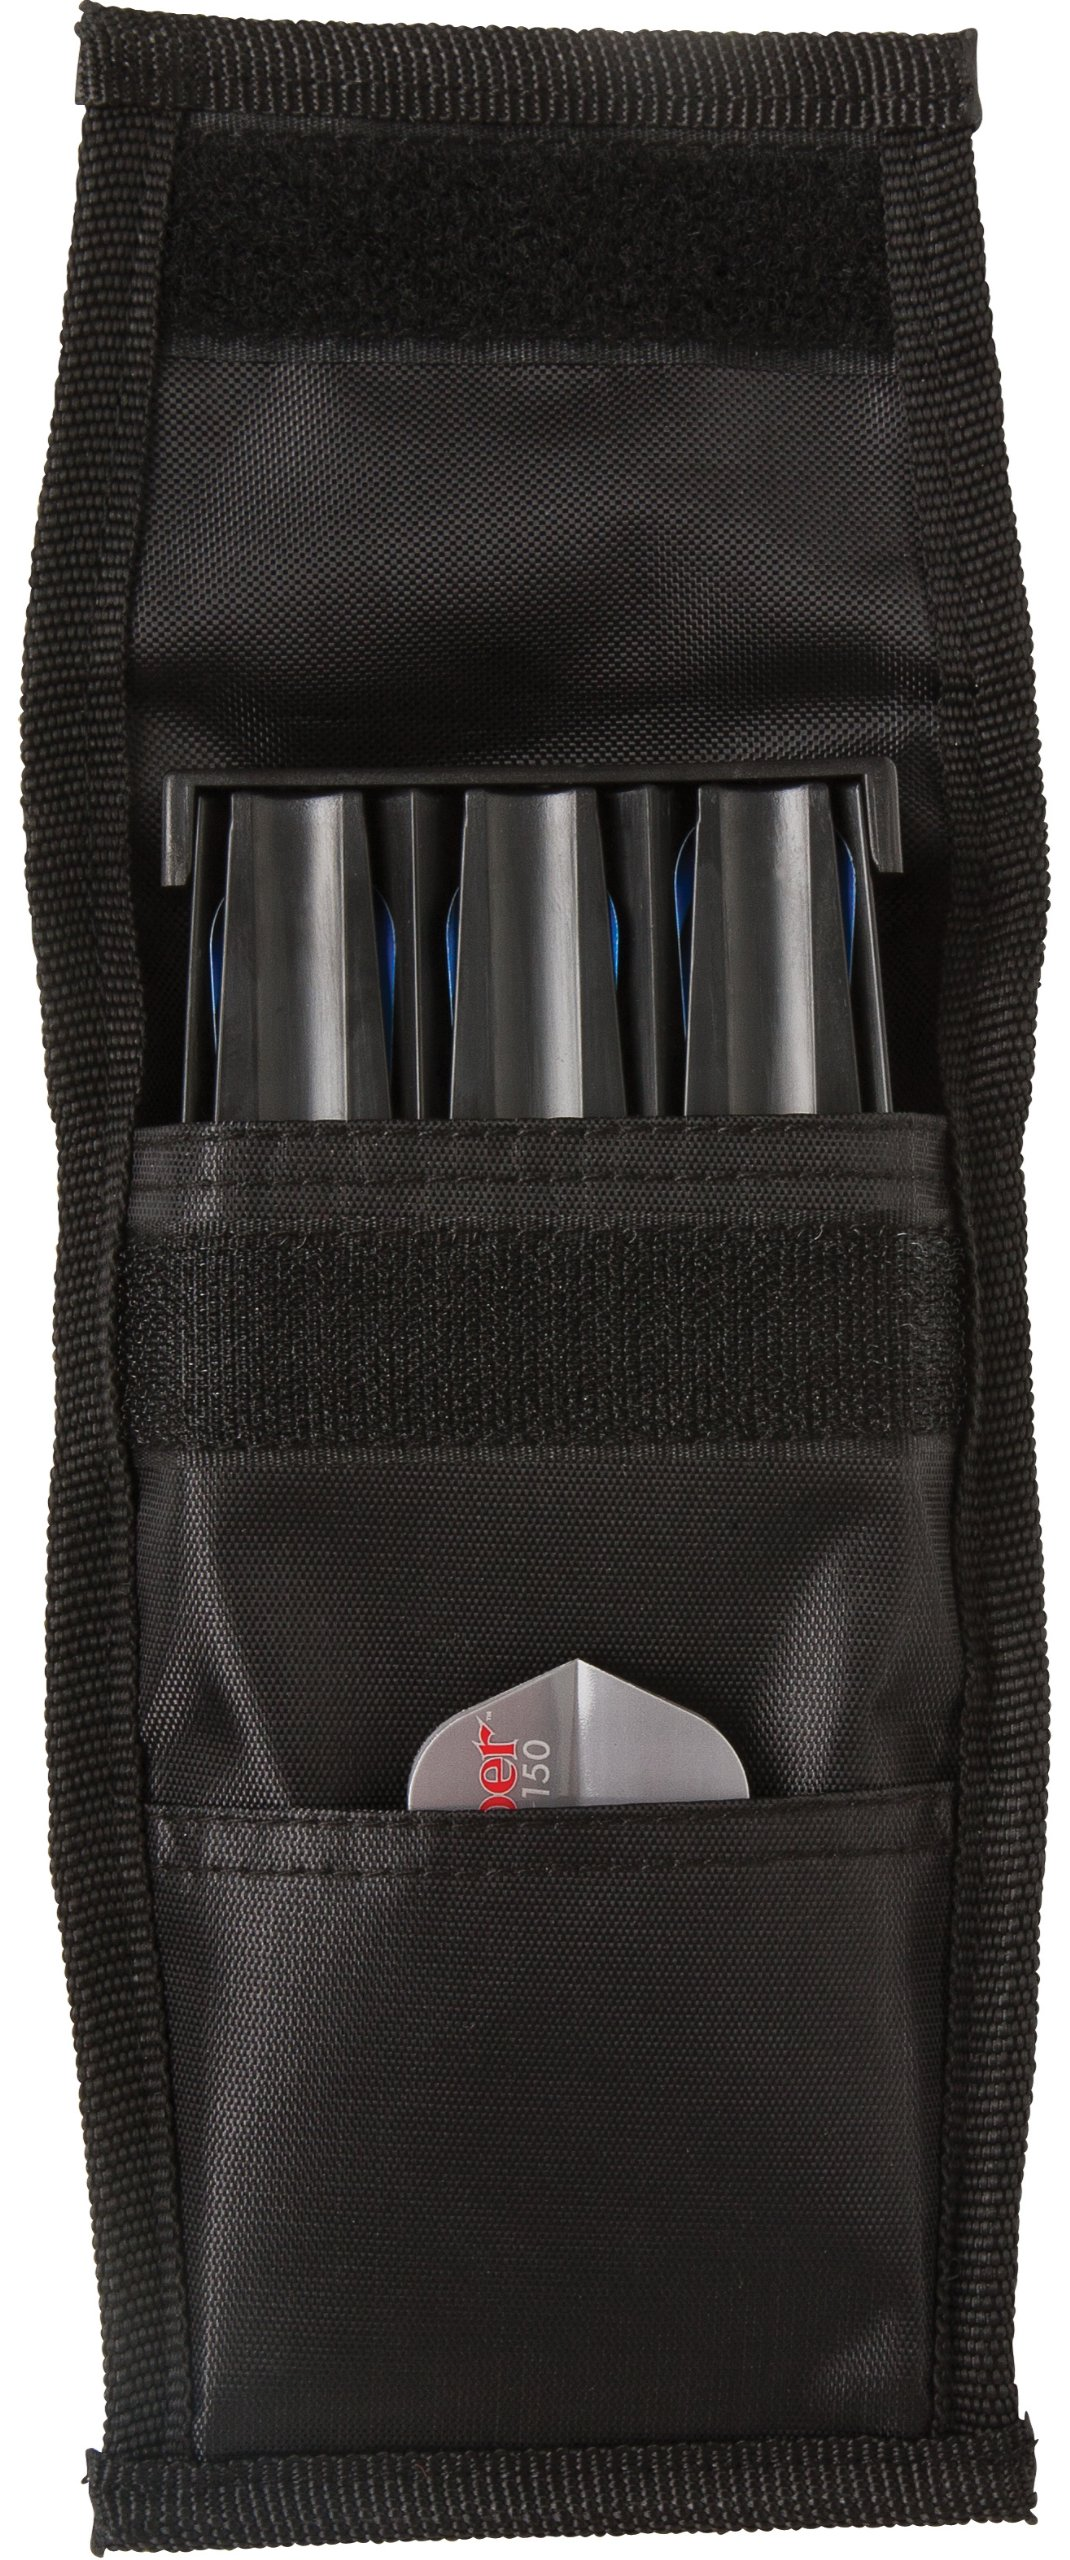 Casemaster Single Black Dart Case with Solid Plastic Insert and Flexible, Tough Nylon Covering, Holds 3 Steel Tip and Soft Tip Darts, Hard Shell Keeps Flights in Perfect Shape